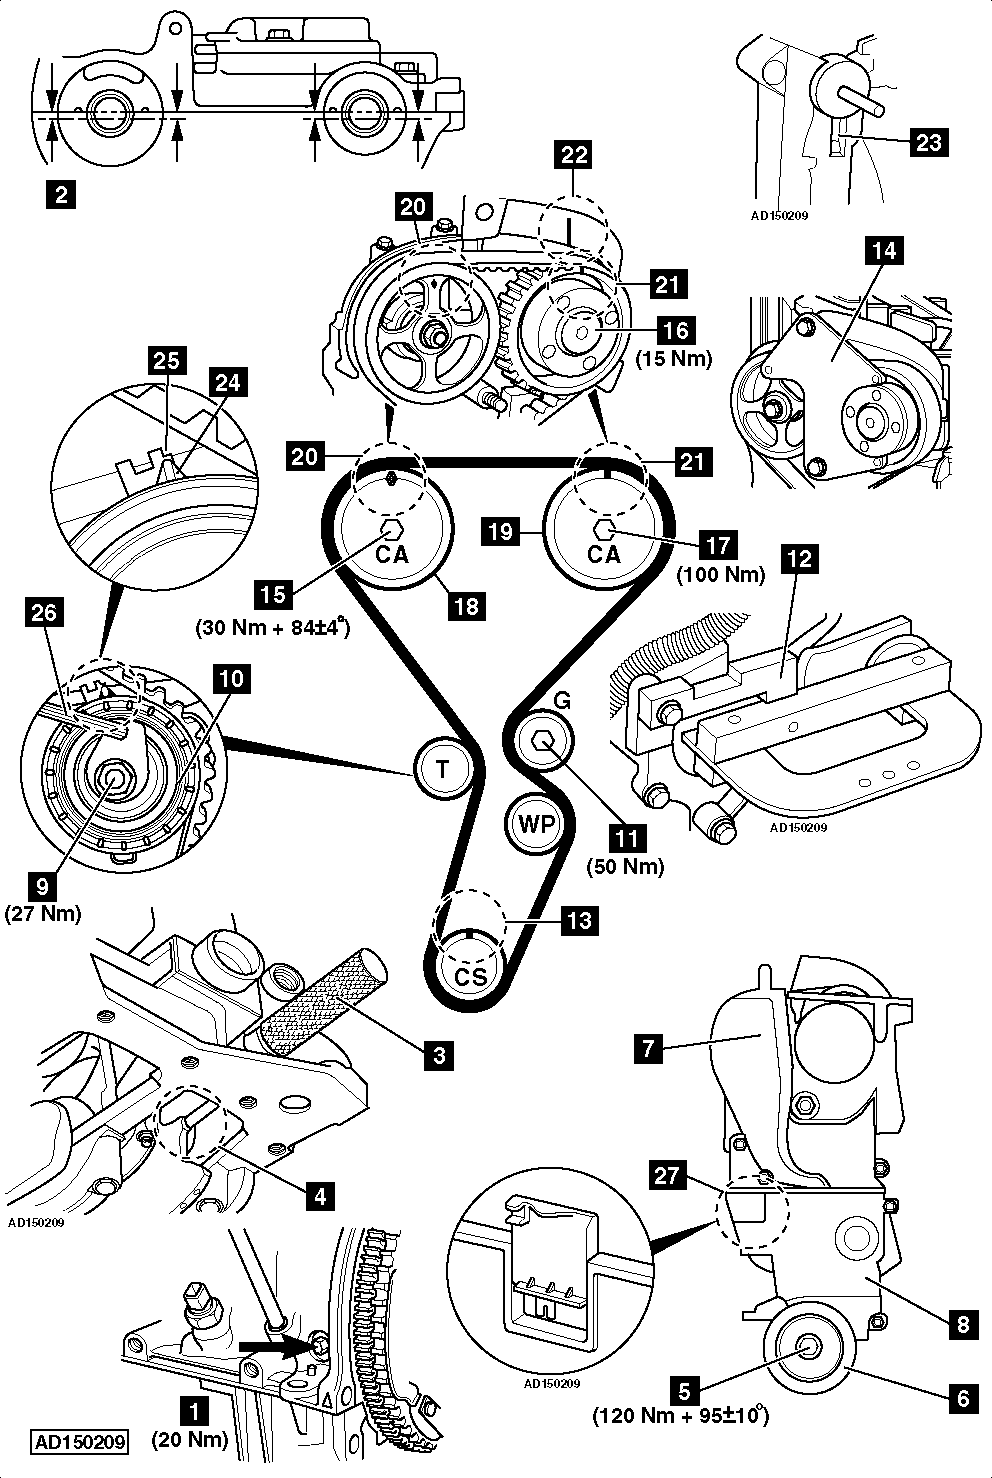 2007 Chevy Silverado Parts Diagram Http Wwwgmtruckscom Forums